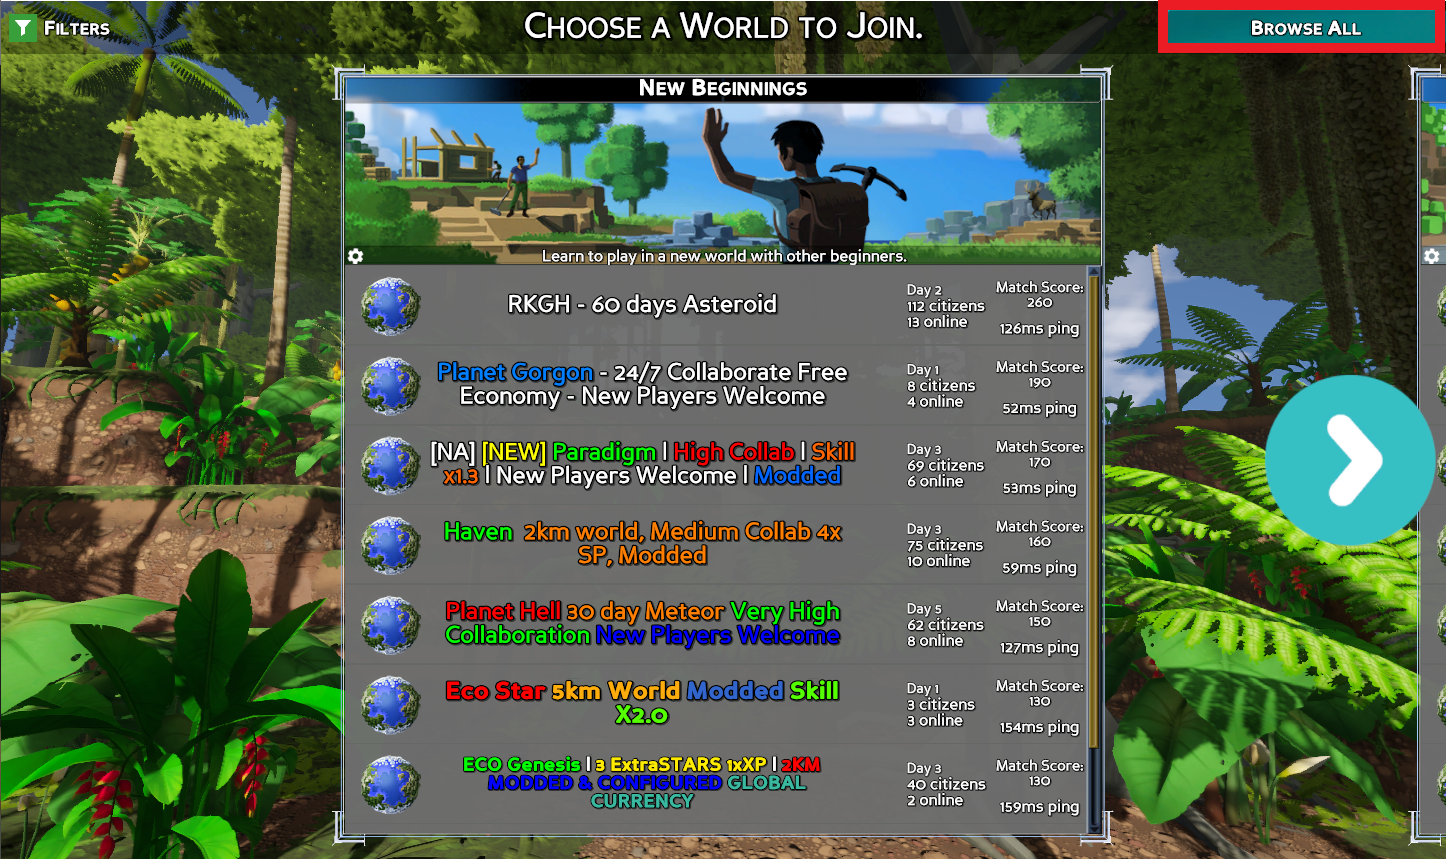 A view of the Beginner game listings, with the Browse All button highlighted